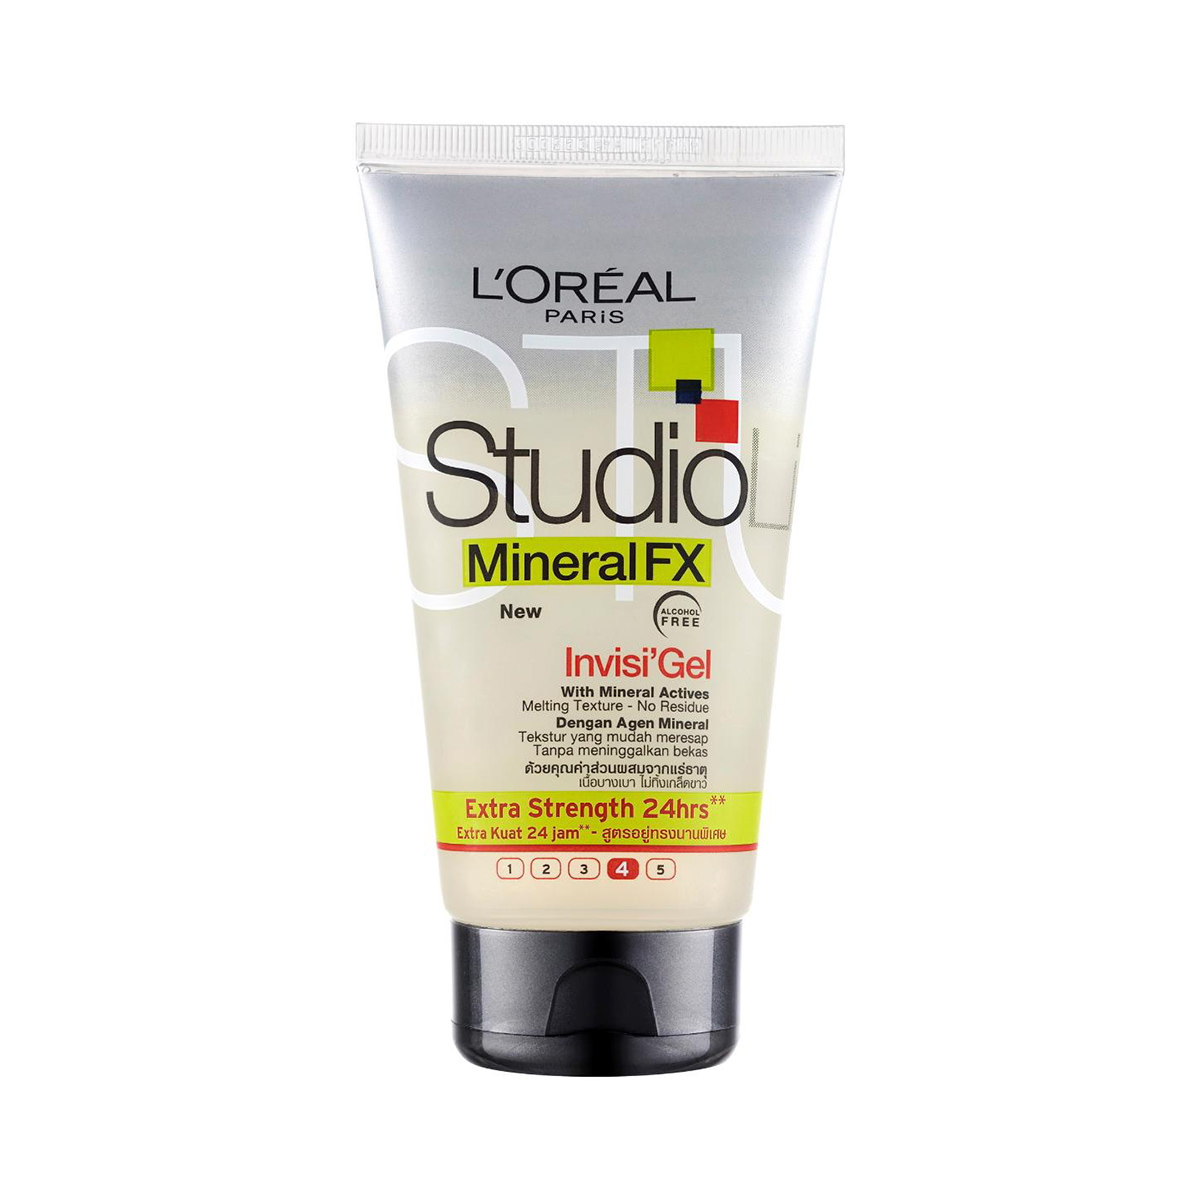 L'oreal Paris - Mineral FX Invisi'Gel Extra Strength (150 ml)_sfw (1)